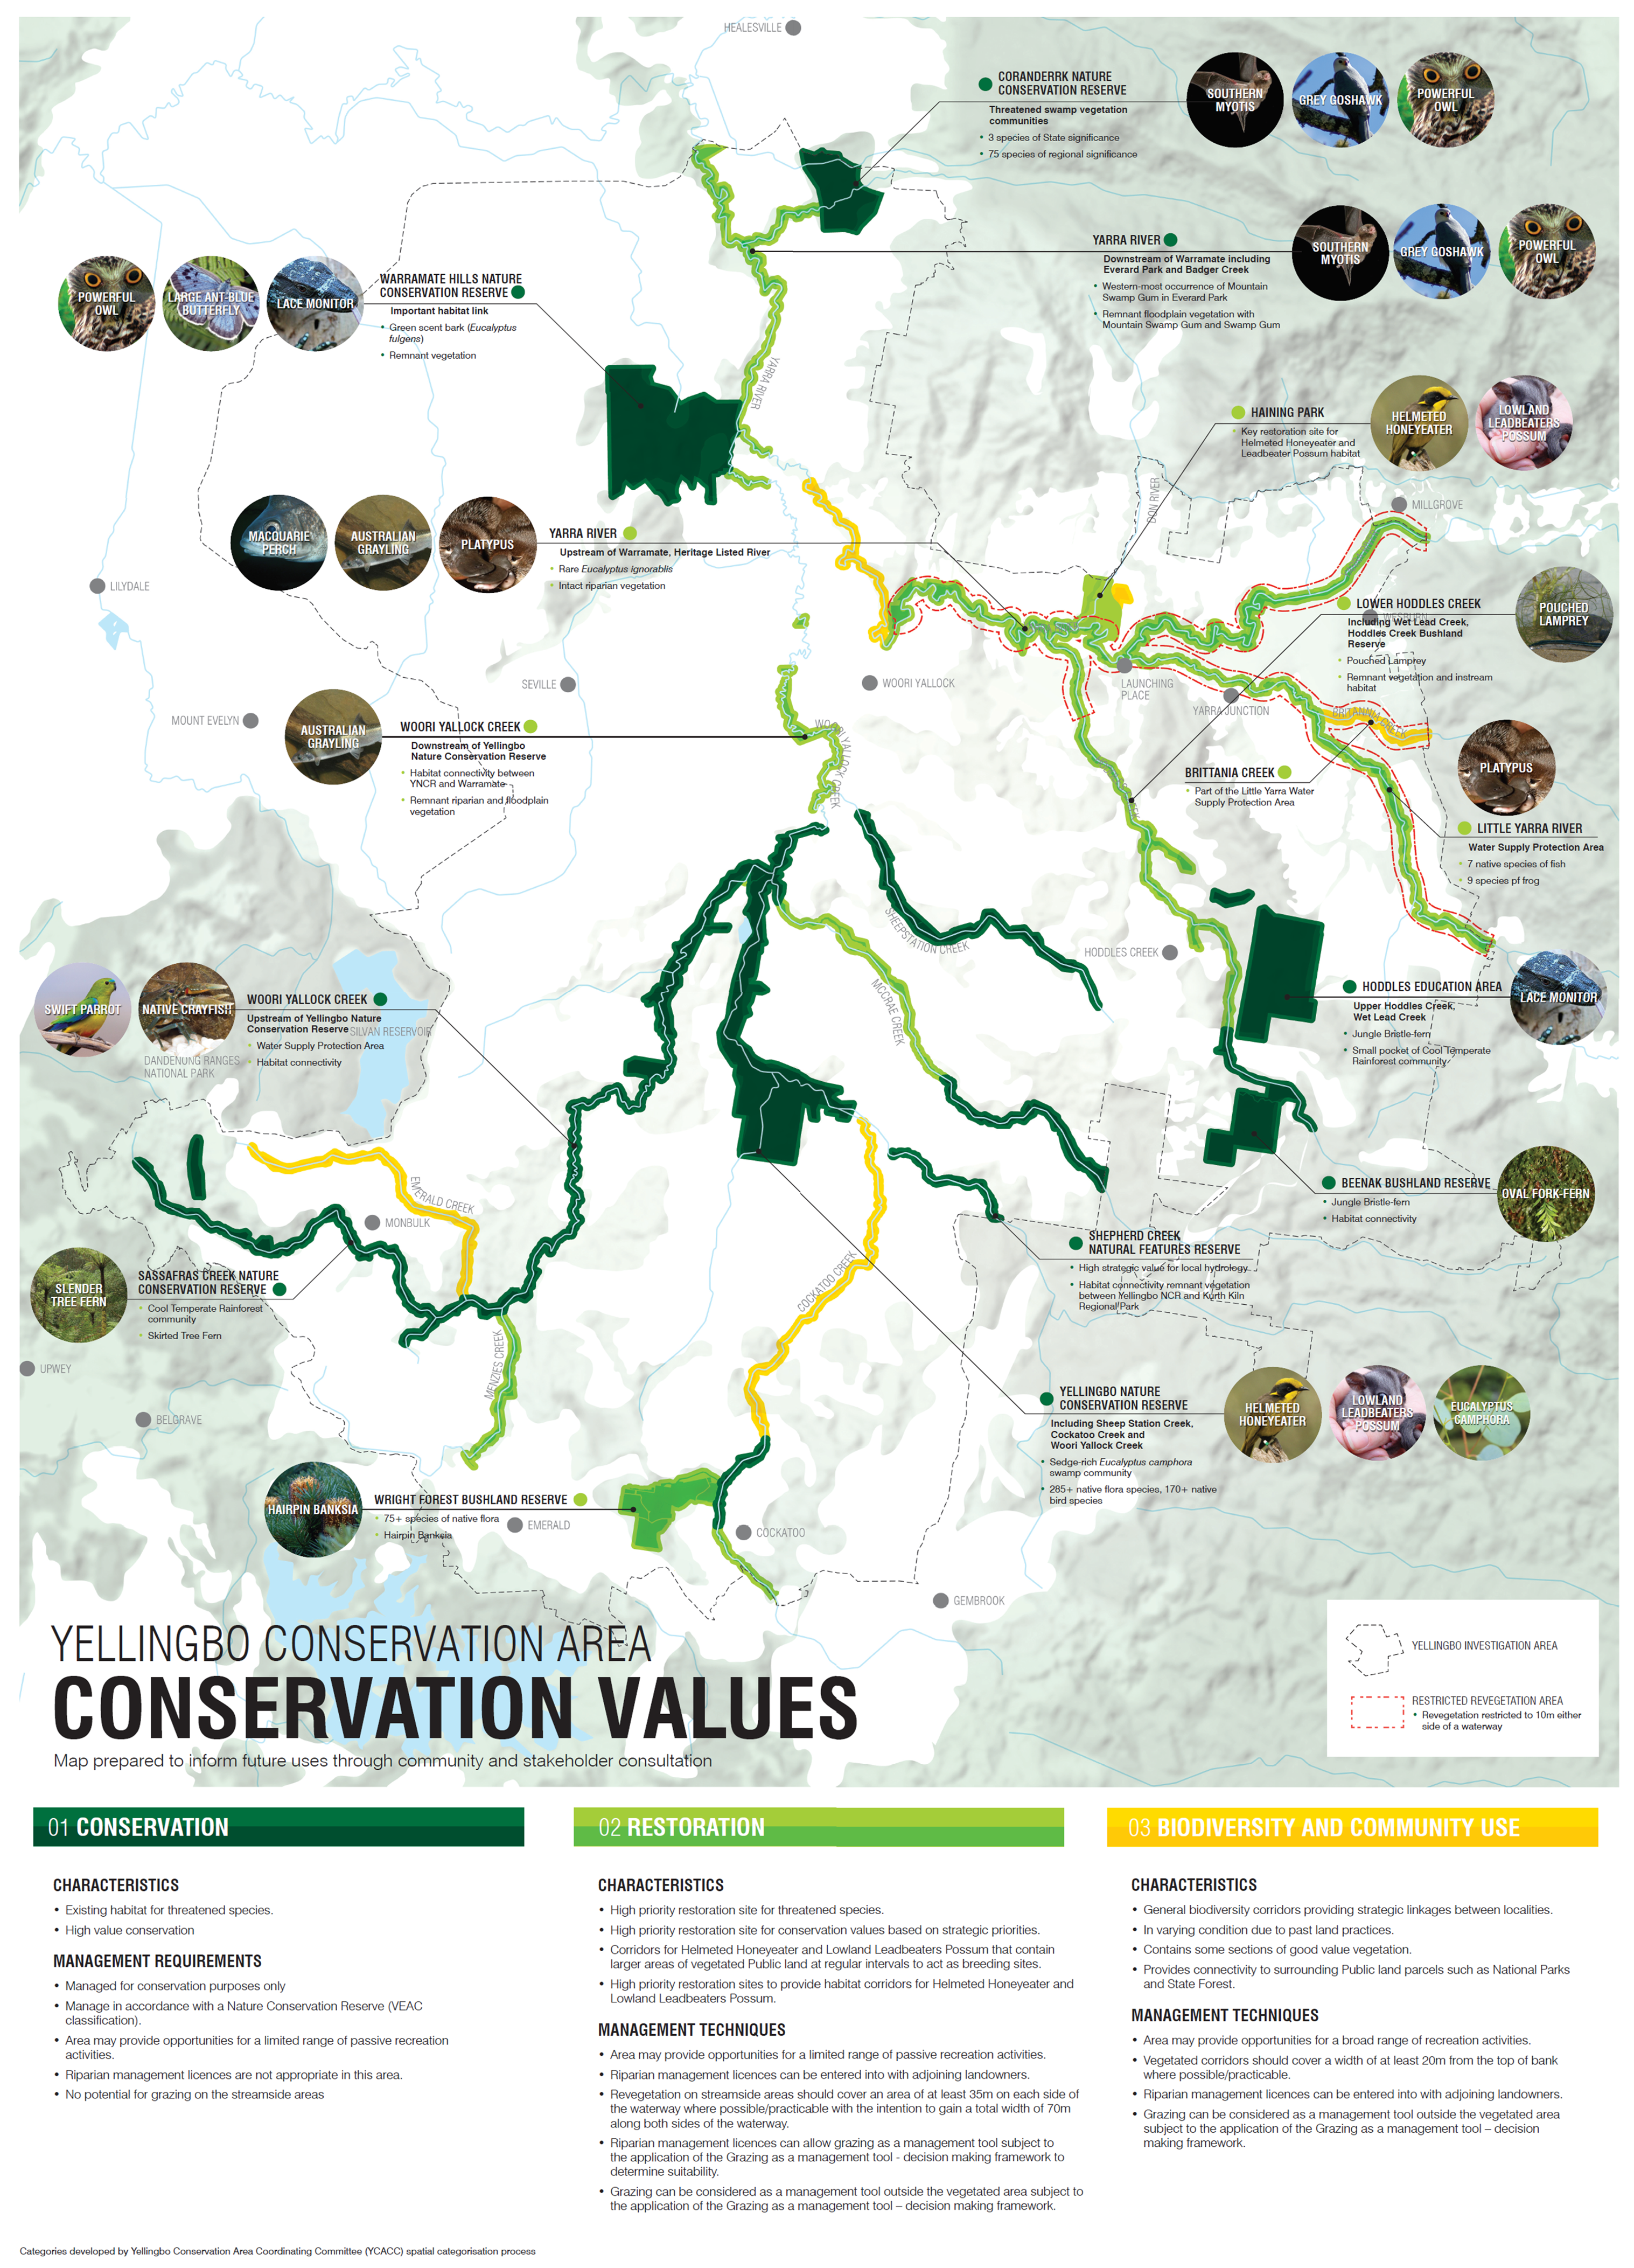 Image of map indicating areas within the Conservation Area that have been identified by the community as having significant conservation values that should be protected by establishing and managing the new conservation area. The map includes conservation values such as the presence of rare and threatened species, remnant ecological vegetation classes, water quality, remnant vegetation along waterways and many aquatic species.